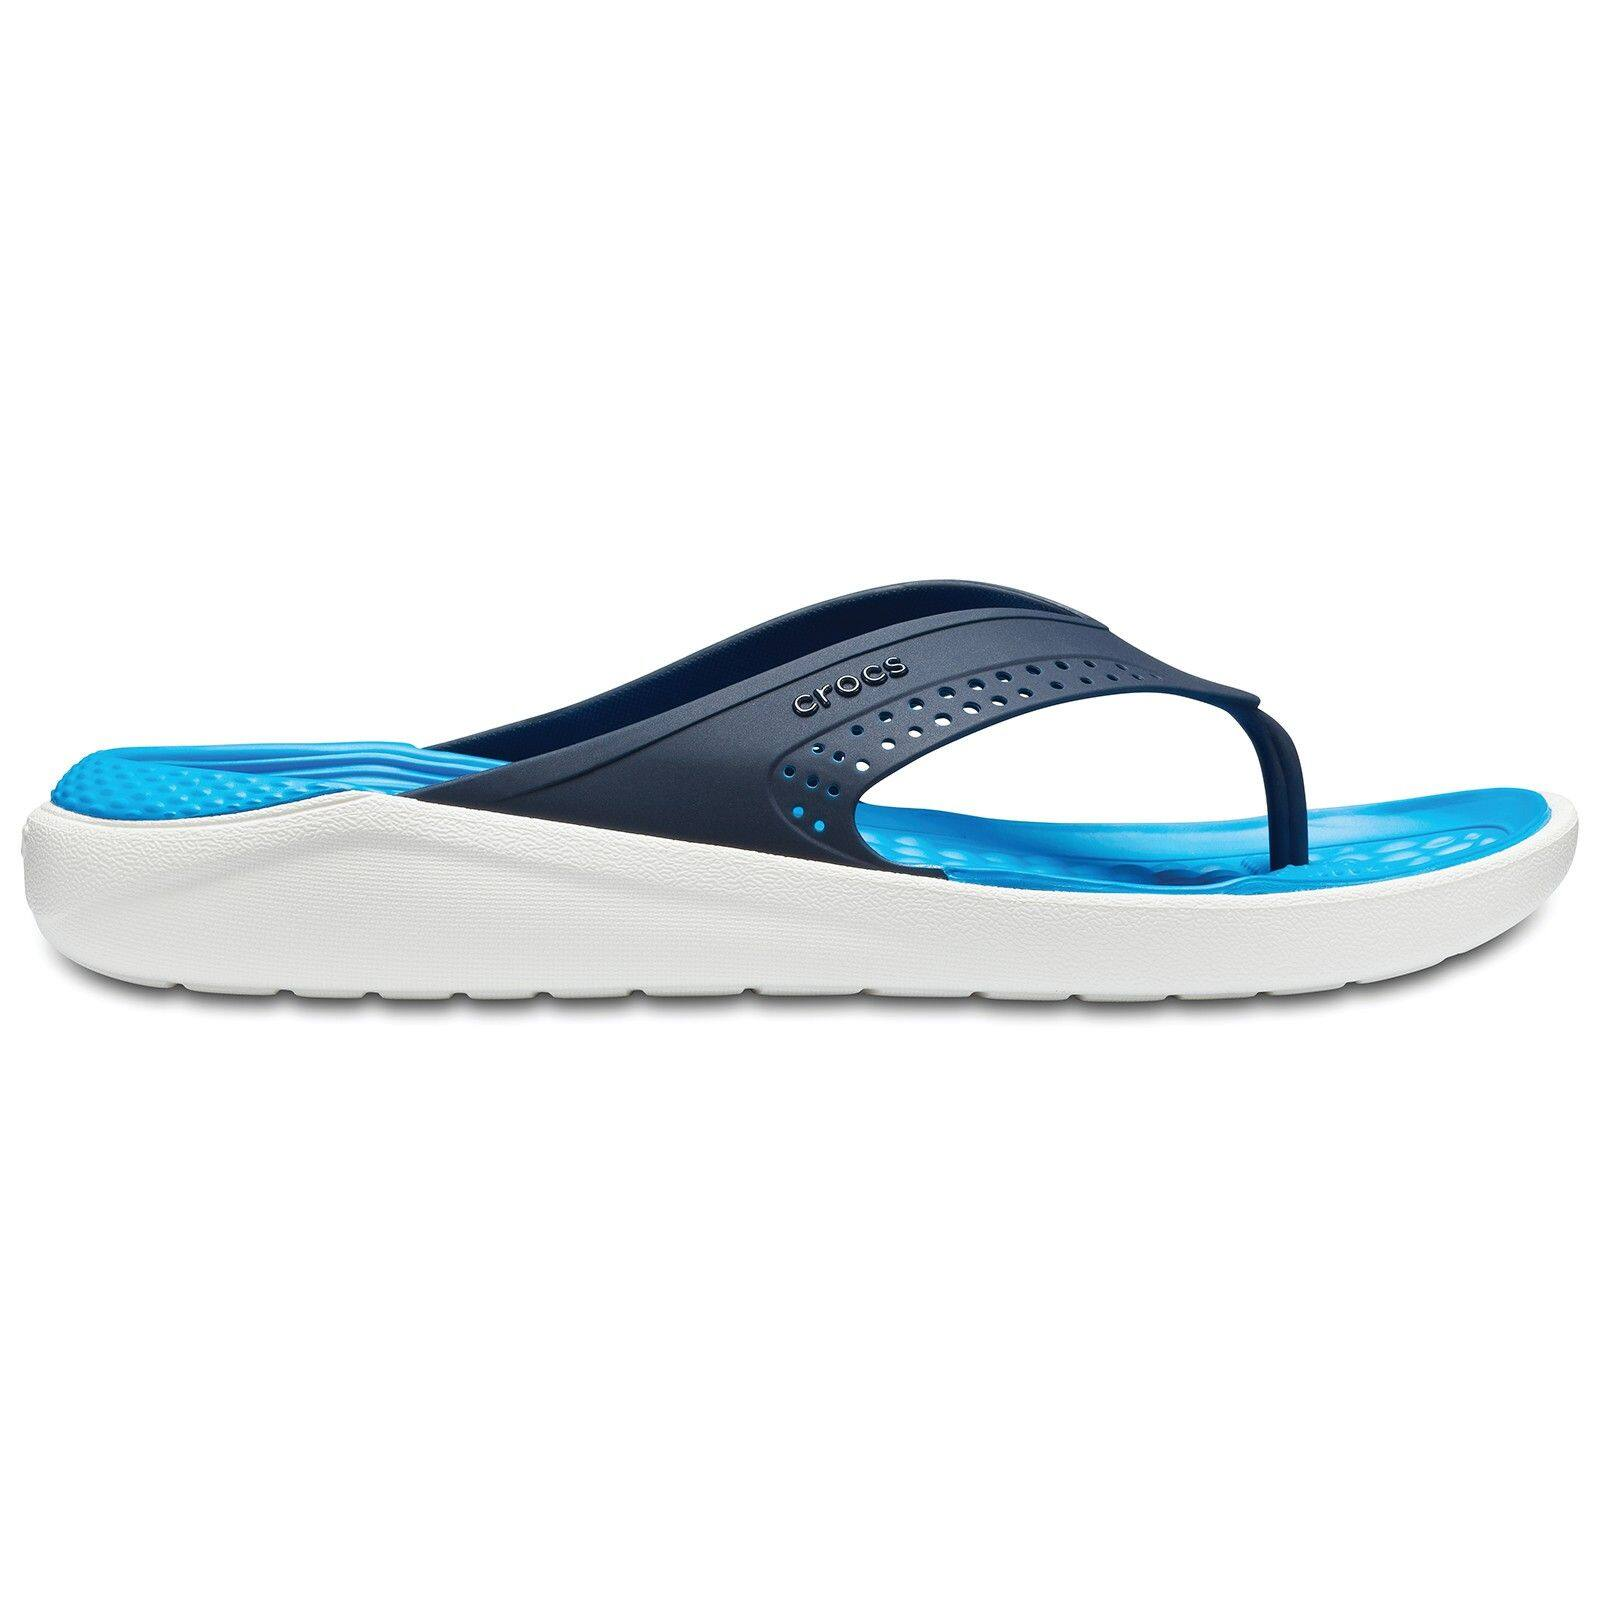 CROCS Products for the Best Prices in